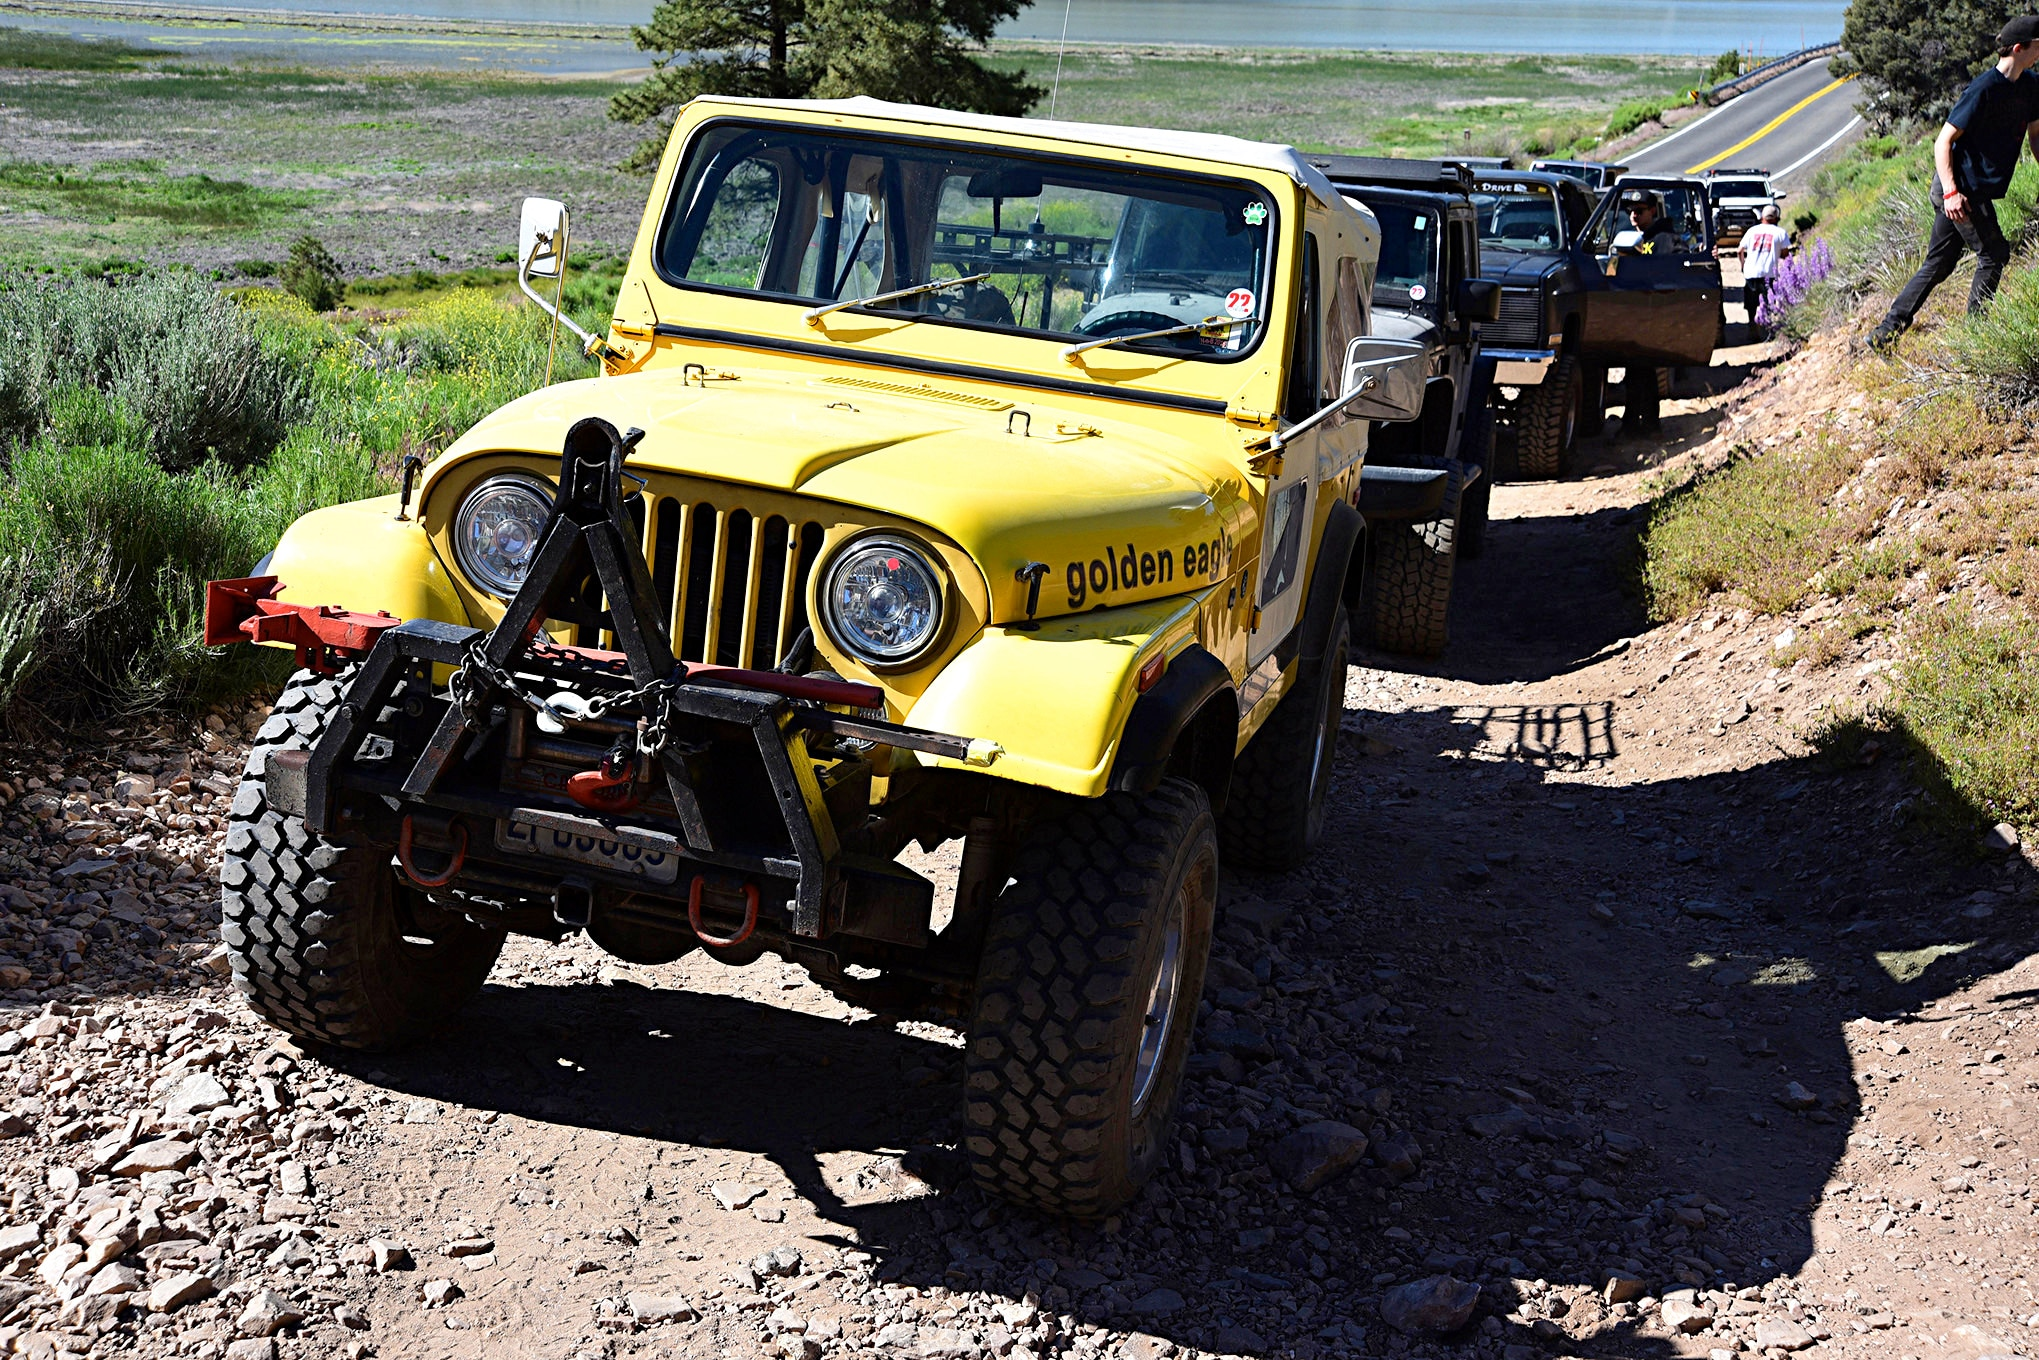 019 jeep event big bear forest fest 2019 inland empire